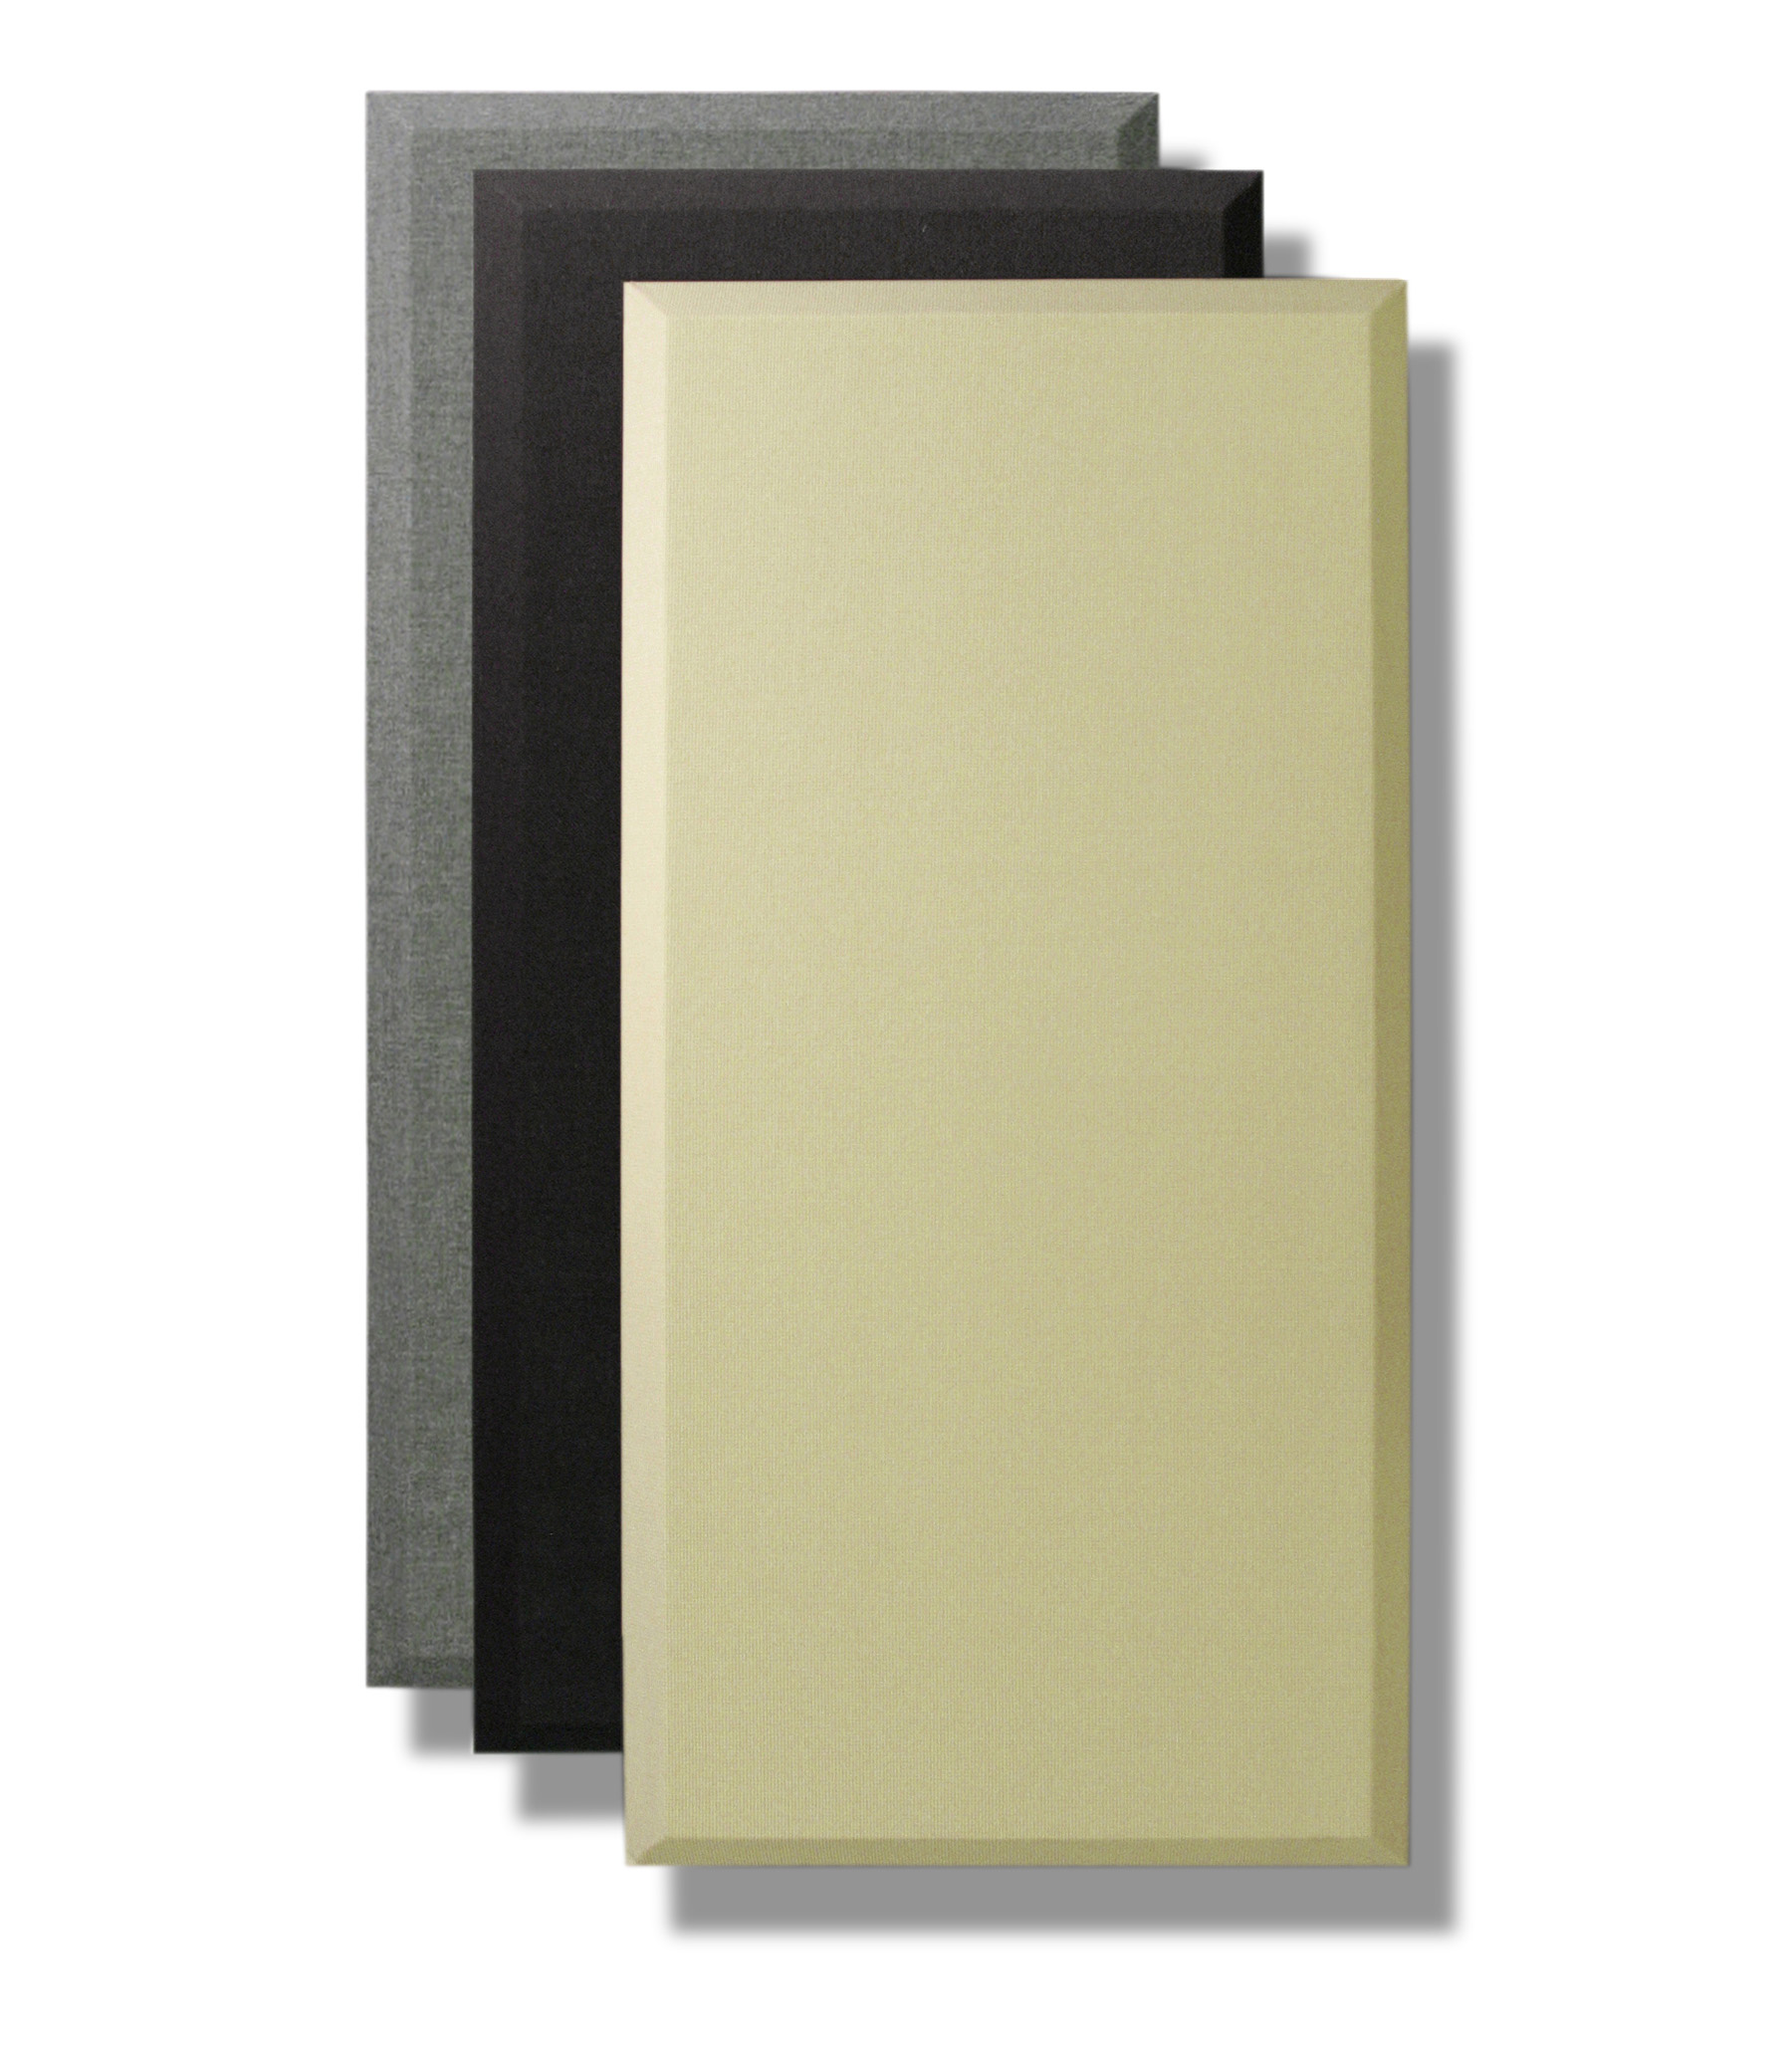 3 SQ EDG 24X48 BEIGE 4pcs per pack